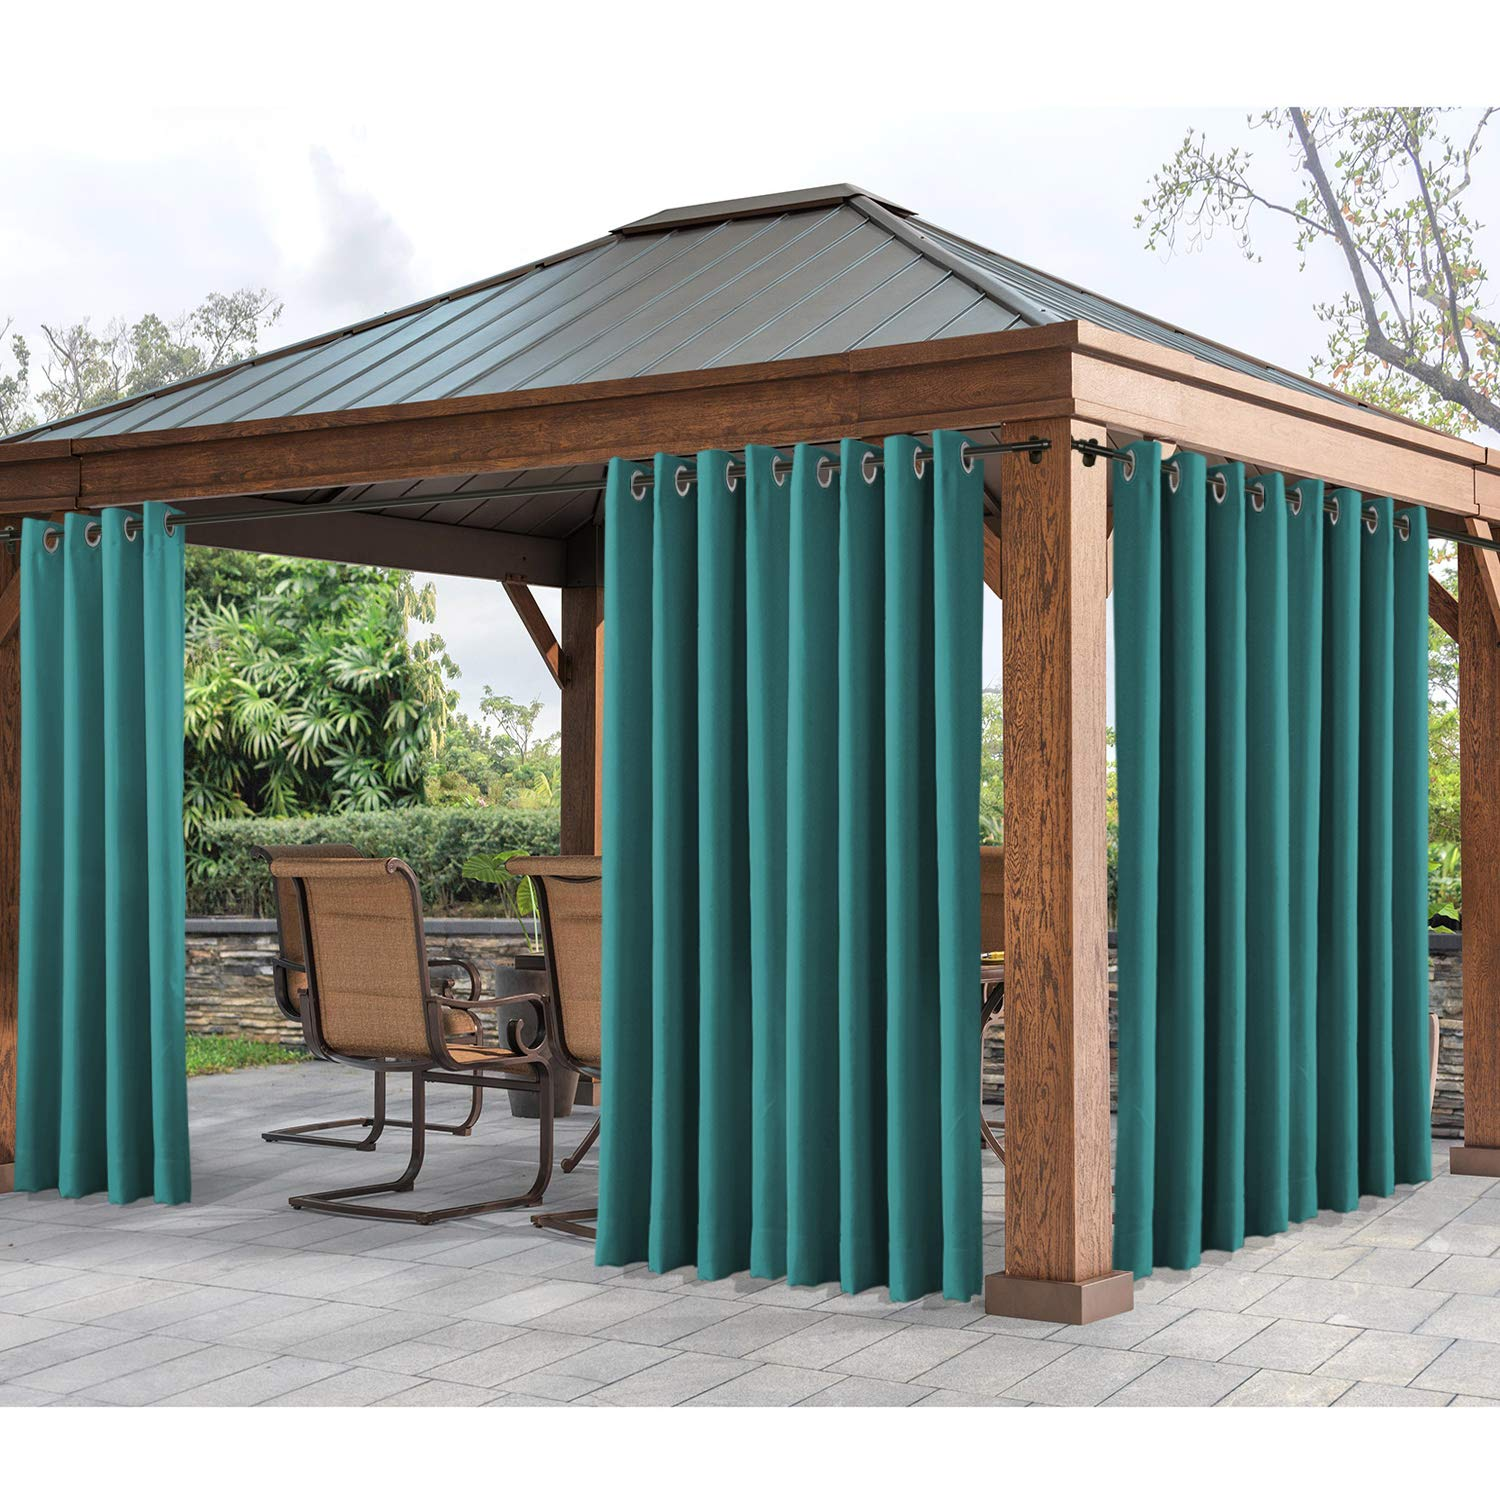 cololeaf Outdoor Curtains Water Resistant,Grommet Thremal Insulated Blackout Curtain for Patio, Porch, Gazebo, Pergola, Cabana, Dock, Beach Home - Turquoise 84'' Wx96 L Inch (1 Panel)